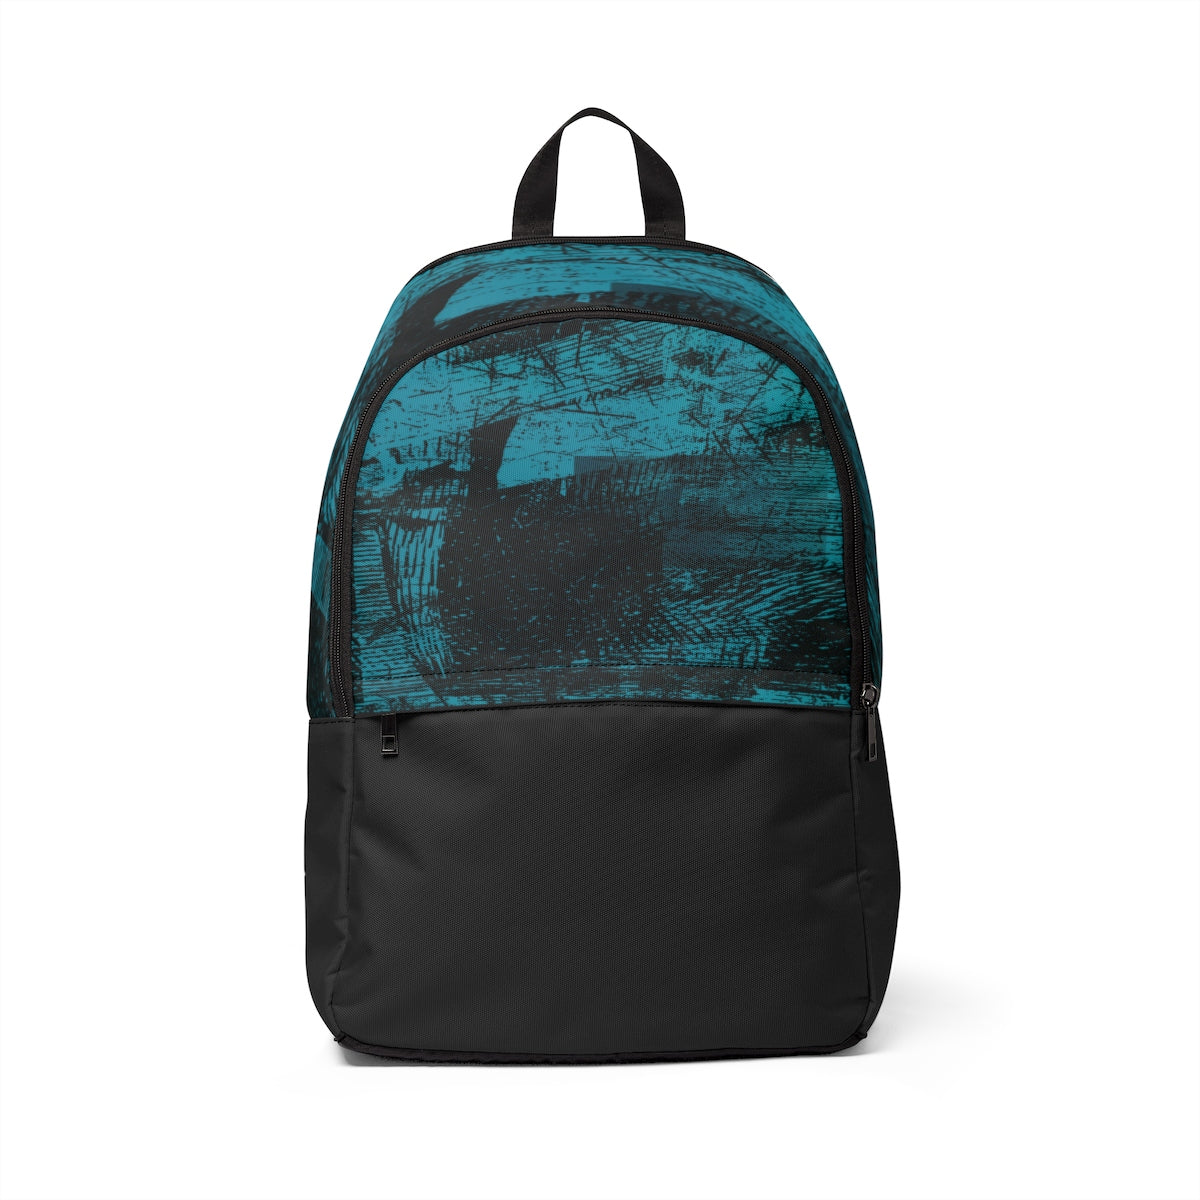 Blue Streak Backpack - Stay Coastal